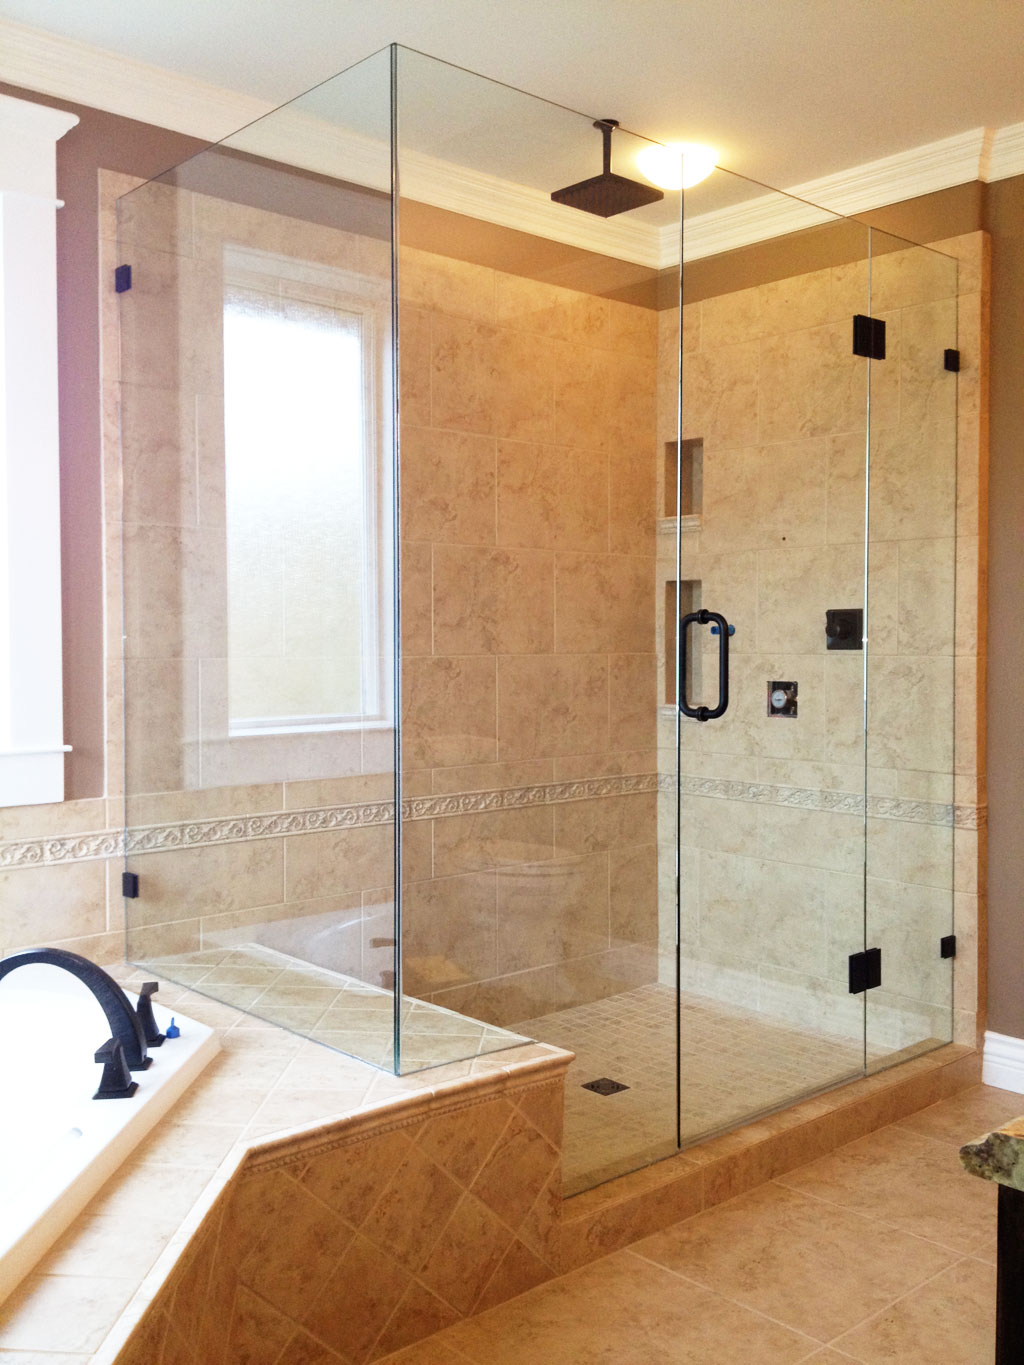 Picture gallery of our custom glass showers bathrooms in victoria bc royal oak glass victoria - Picture of bathroom ...